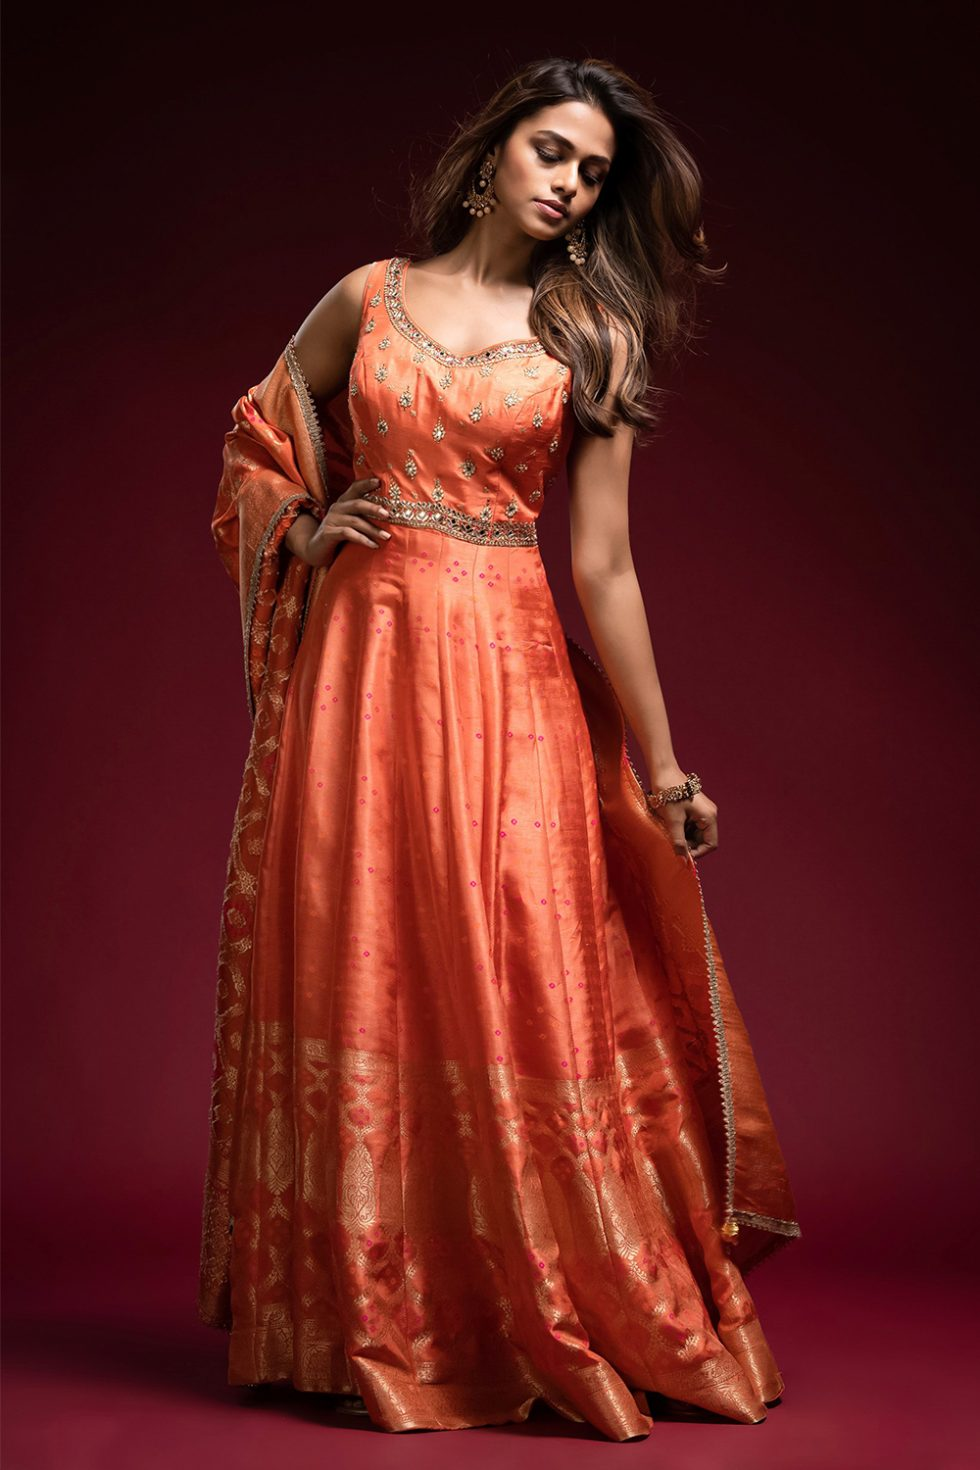 Tangerine orange banarasi anarkali gown set with a gota and gold hand embroidered bodice paired with a matching banarasi dupatta.